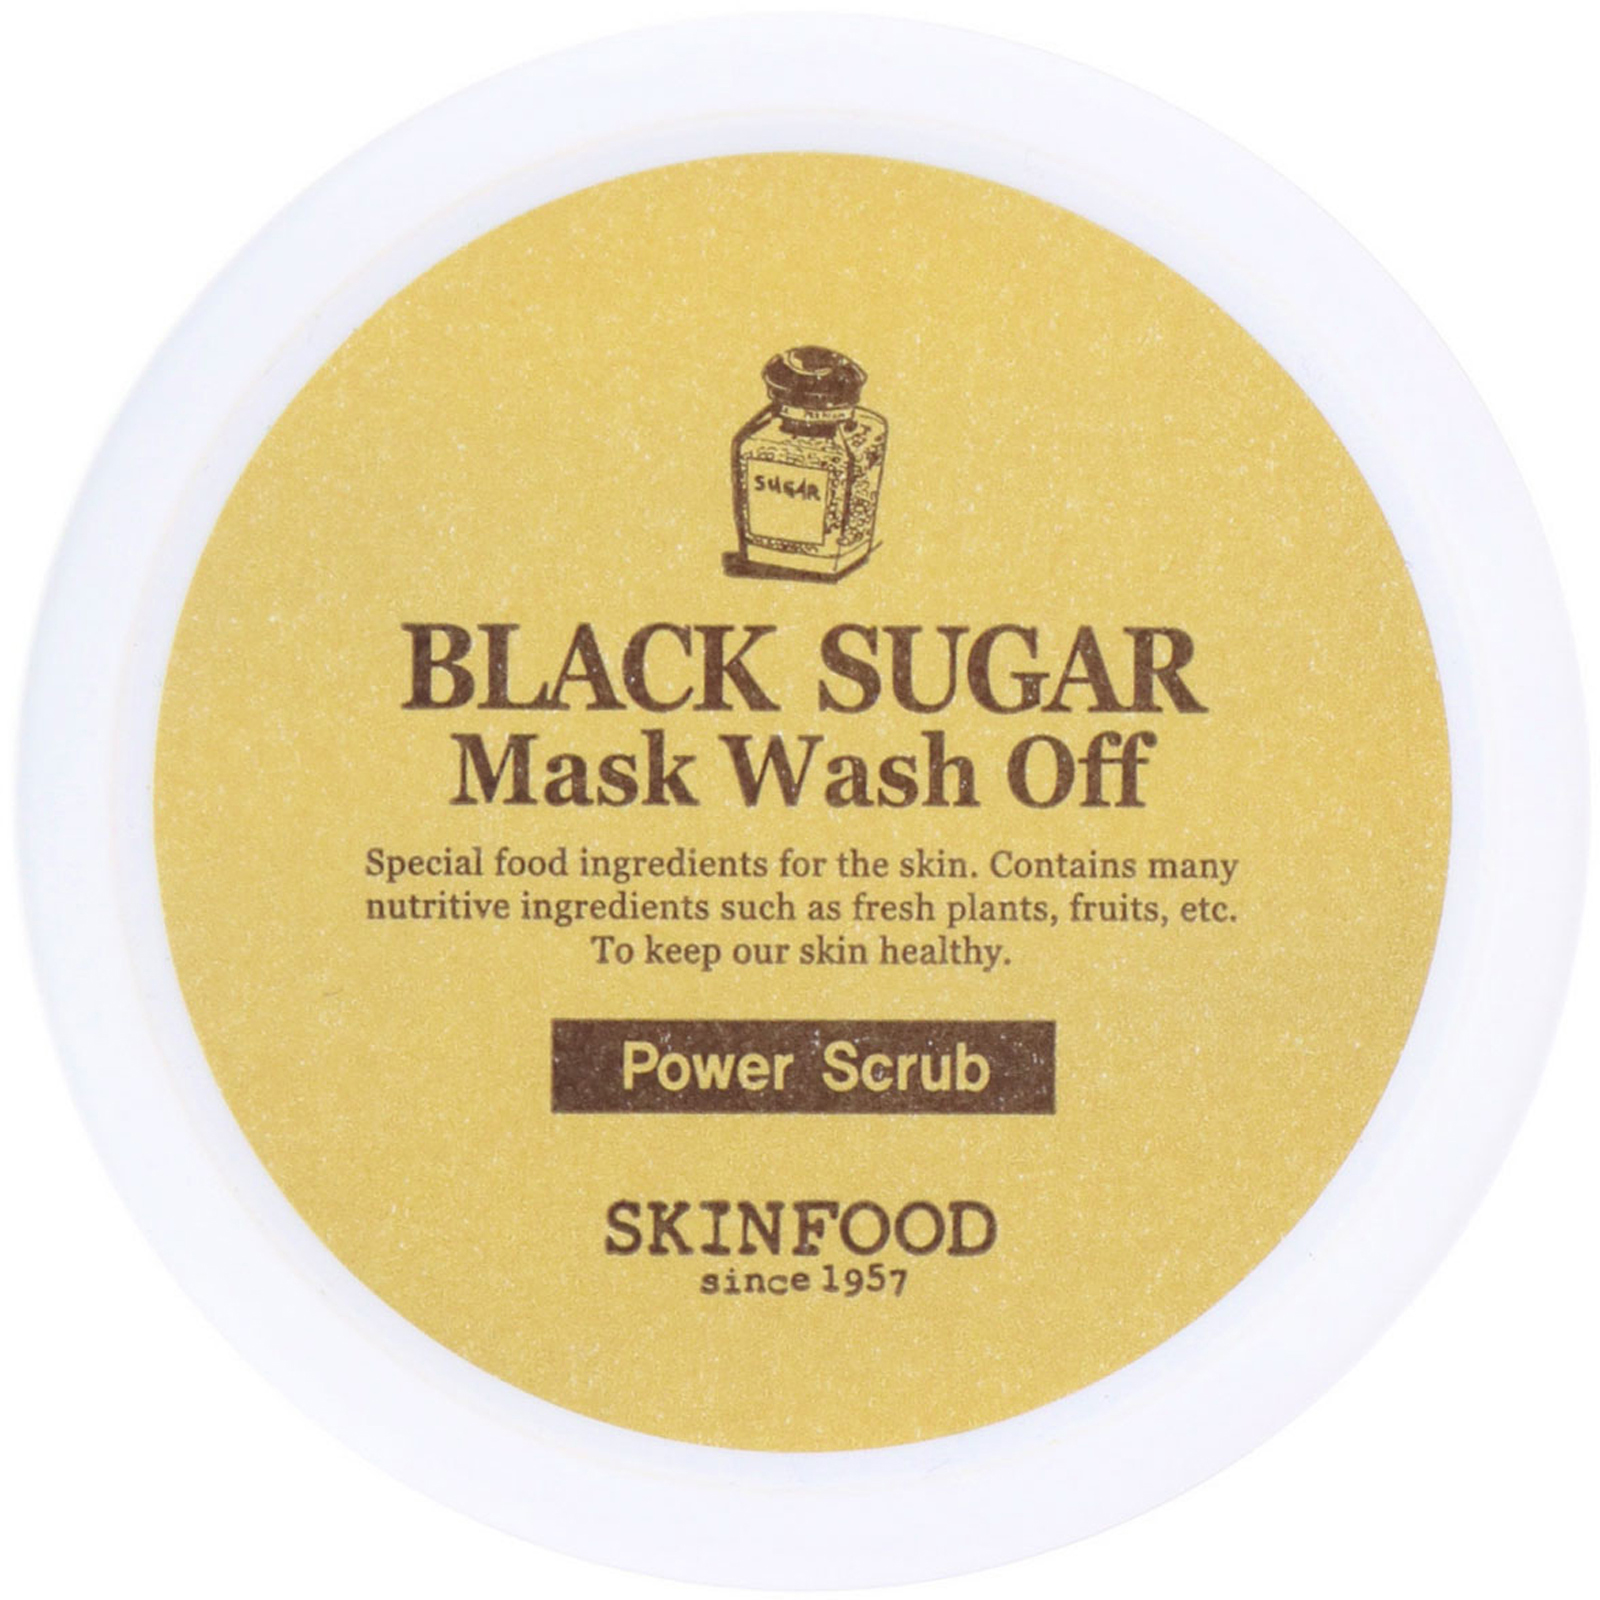 Skinfood Black Sugar Mask Wash Off 352 Oz 100 G Skin Food Strawberry